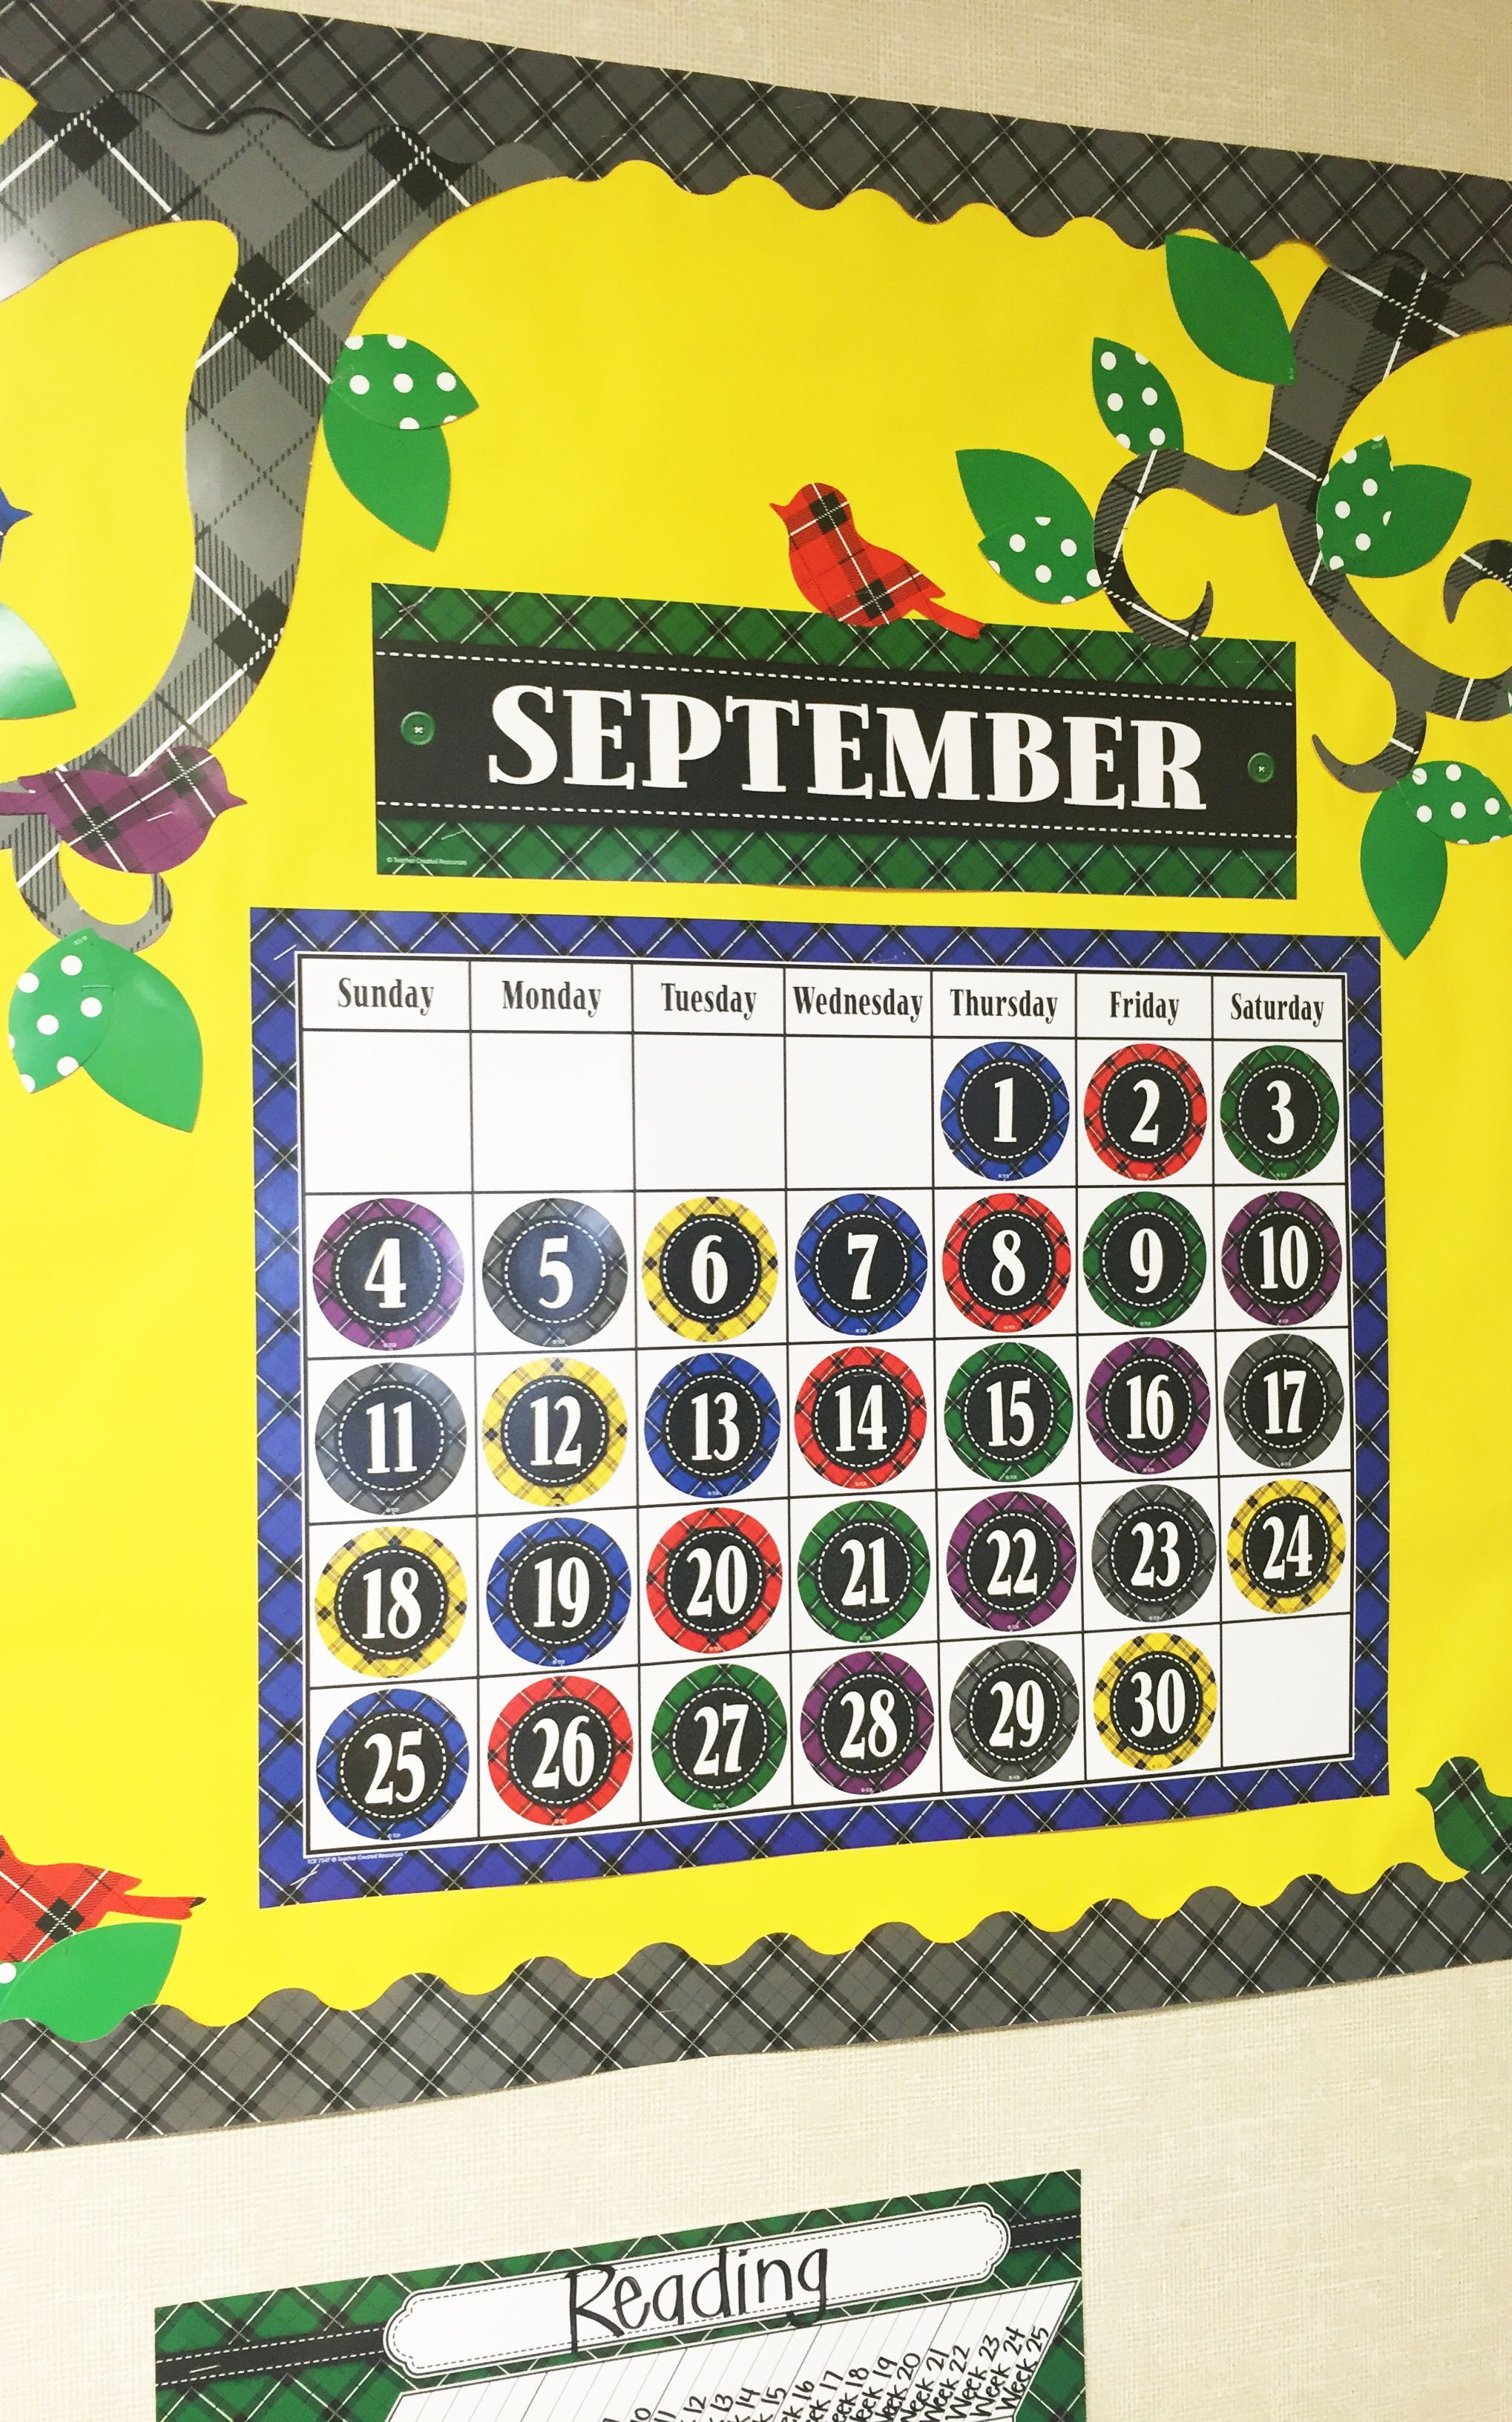 The Plaid Calendar Chart And Calendar Days Are Classic And Vibrant